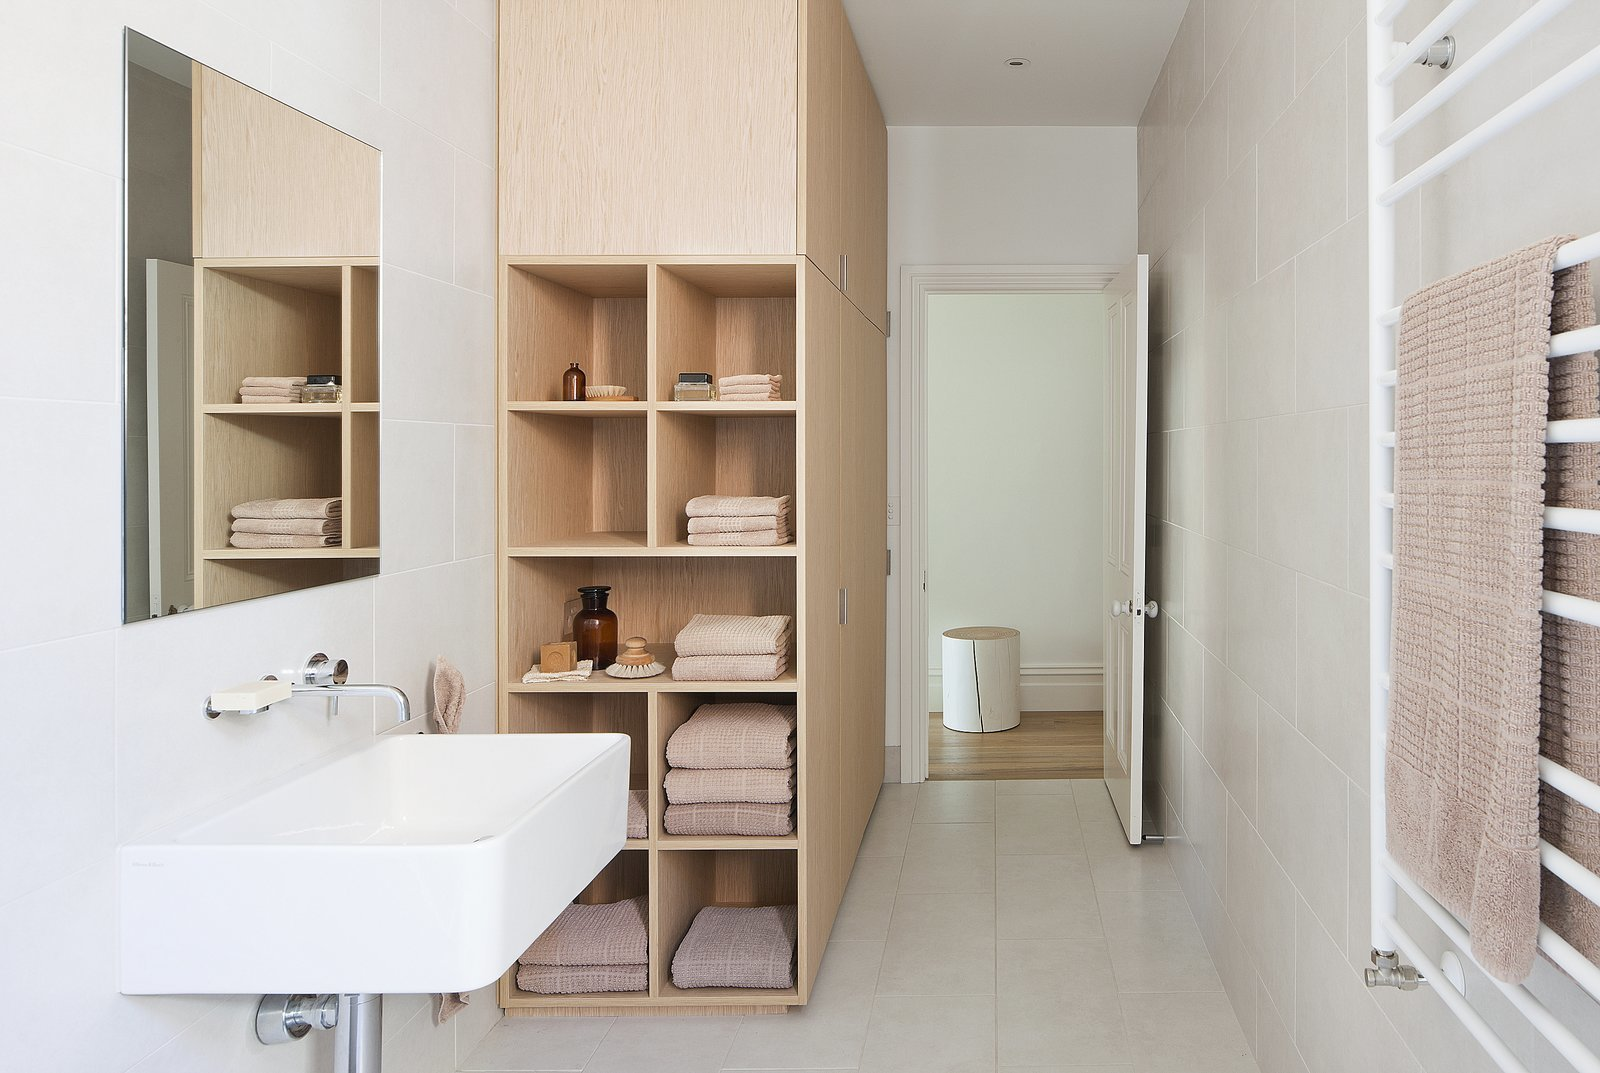 Showy This Home Organic Feel Wardrobe Which Gives Bathroom A Warm Melbourne By Design Duo Kathryn Robson Susie Cohen Has Deep Nook Shelves At One End bathroom Bathroom Racks And Shelves